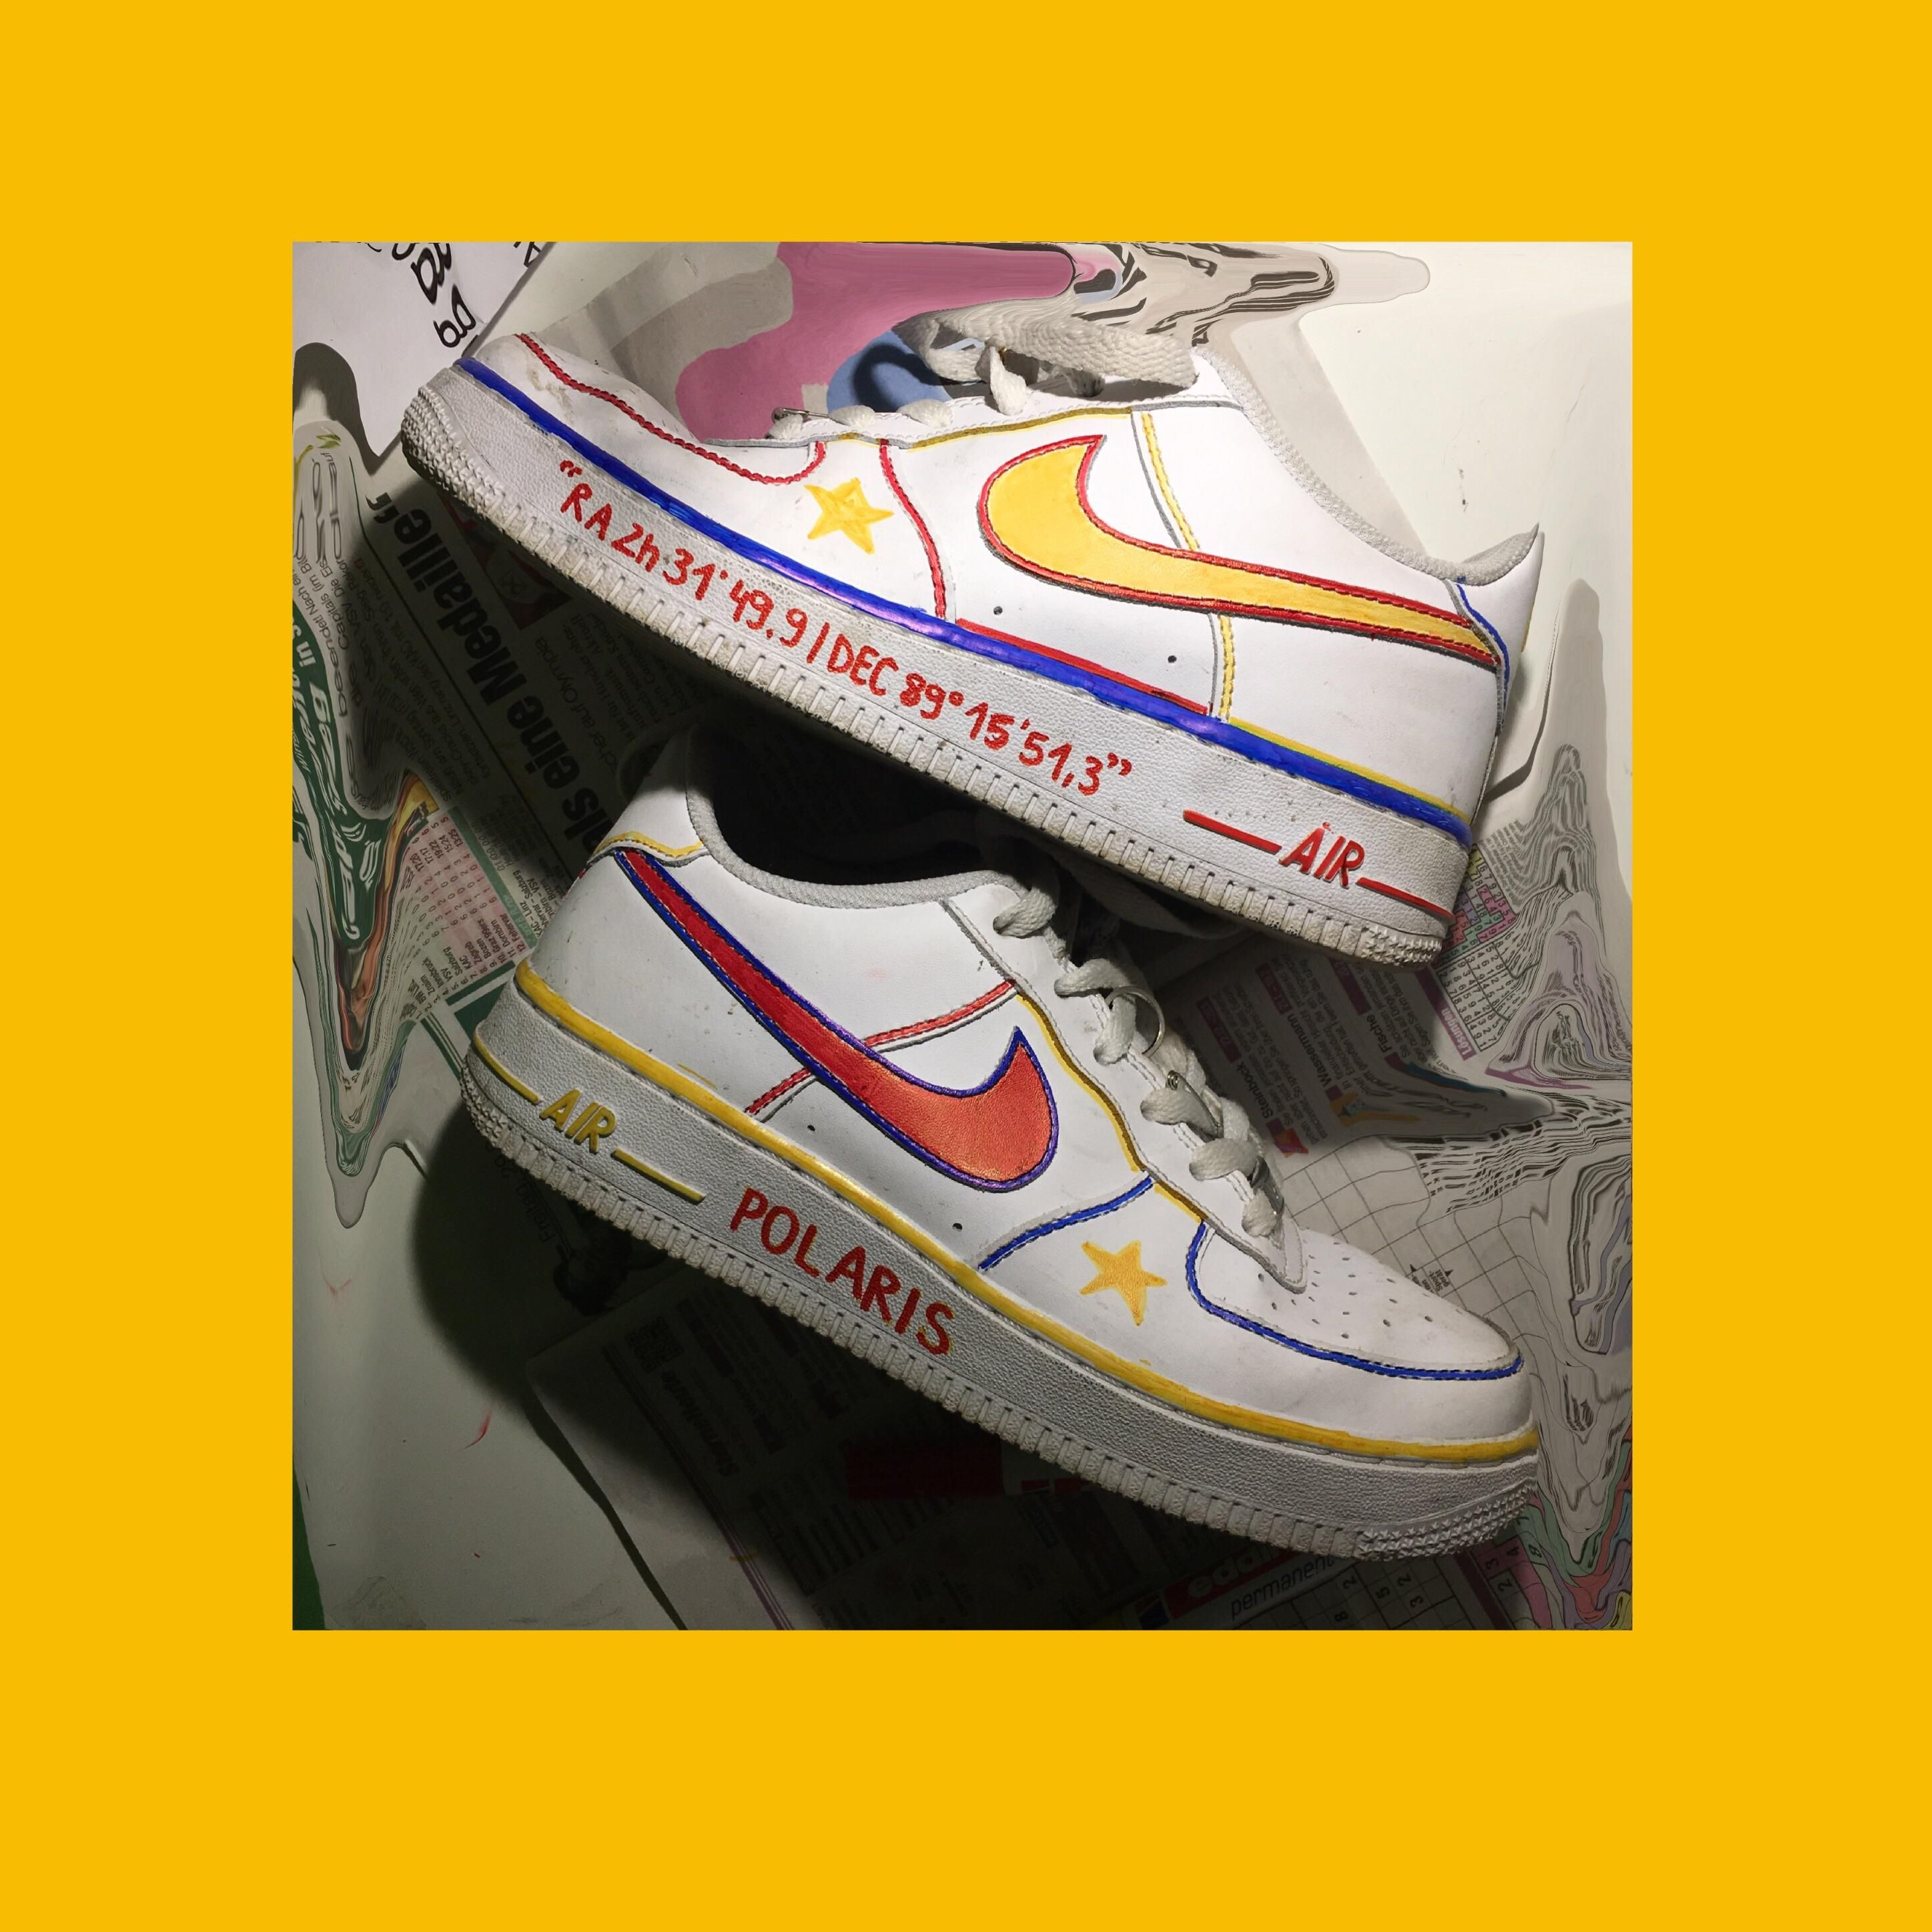 Nike Air Force ones, Nike Running Shoes Page 4 of 17